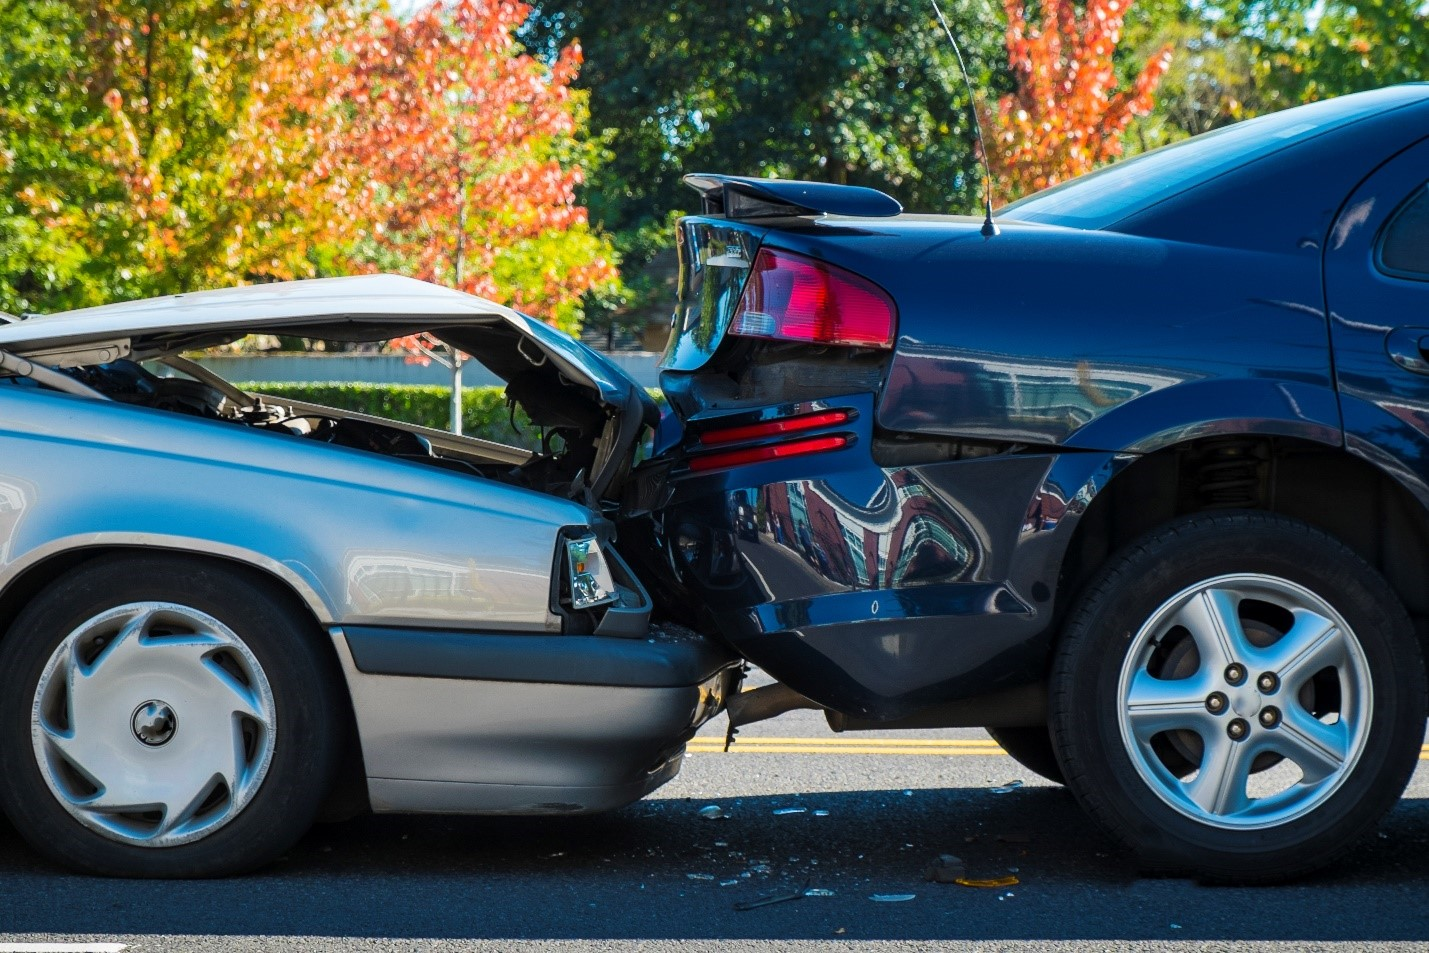 Side view of a front-end and rear-end collision involving two vehicles smashed together